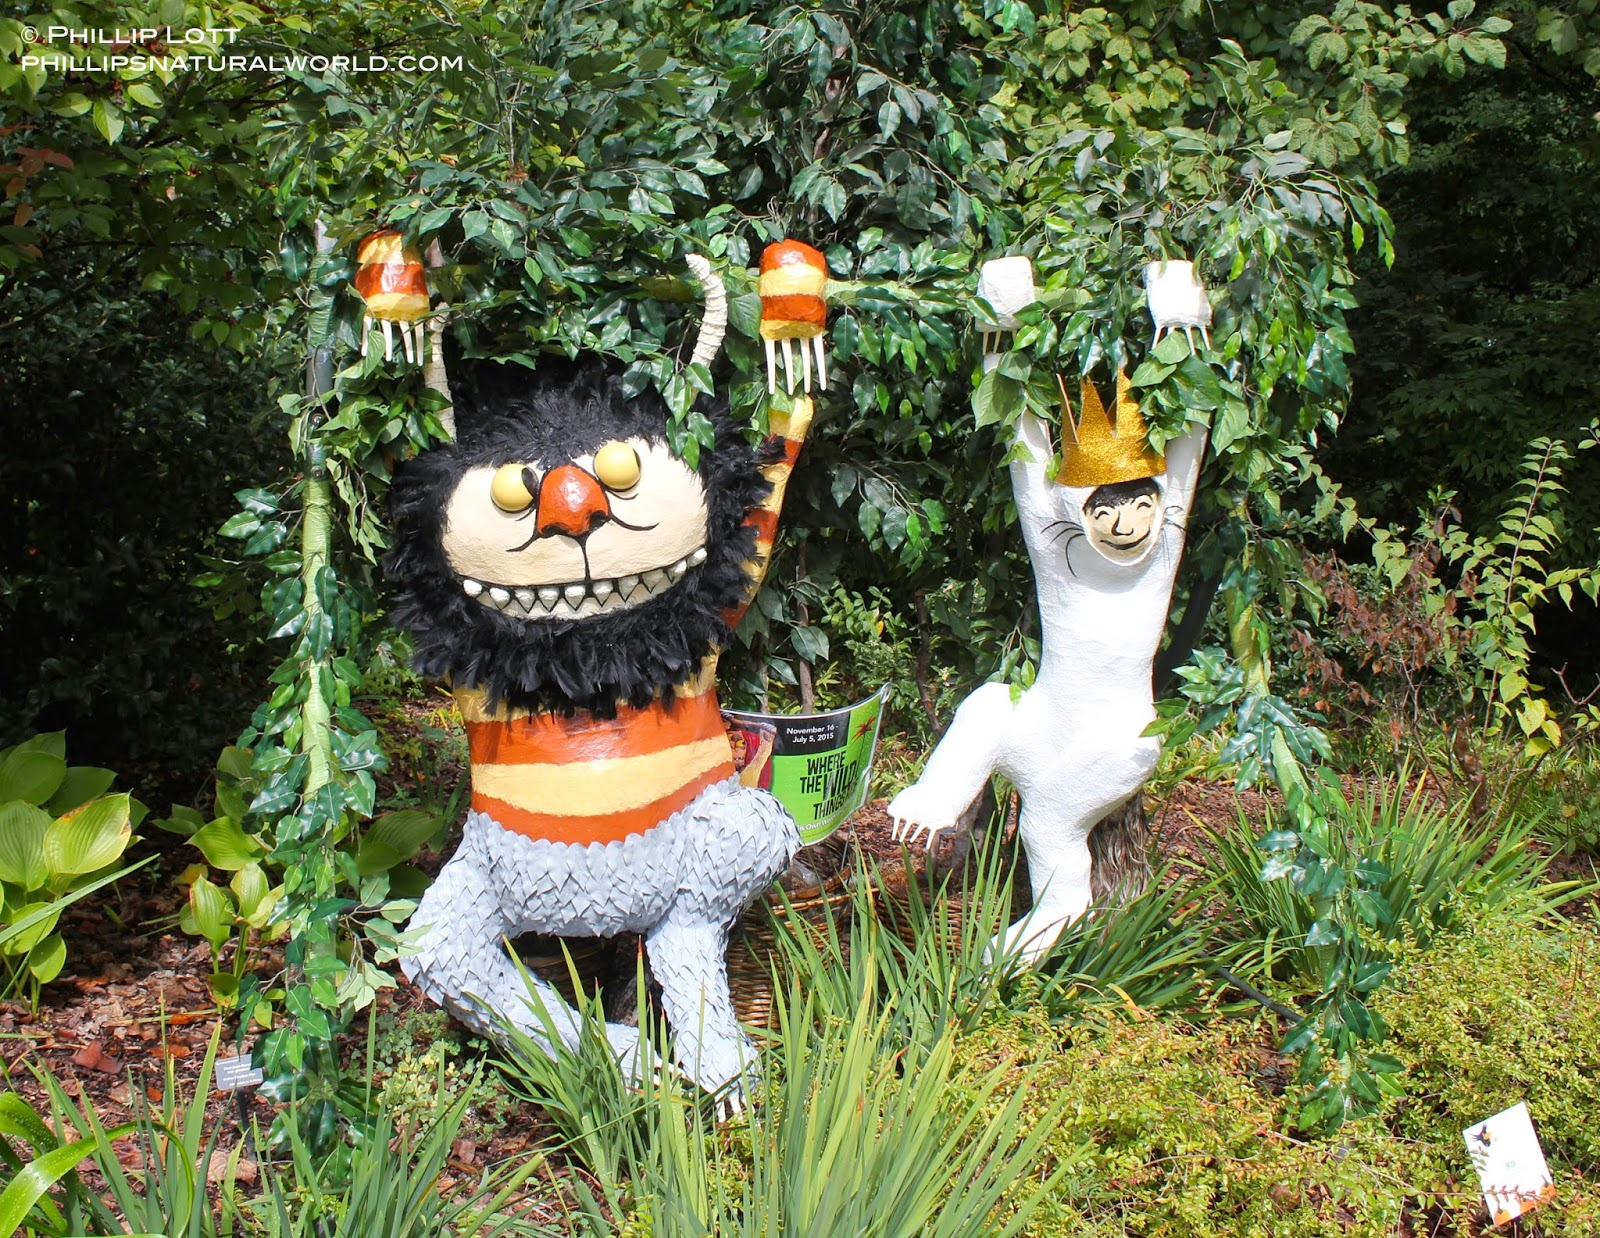 Halloween Scarecrows and Pumpkin Heads | Phillip\'s Natural World